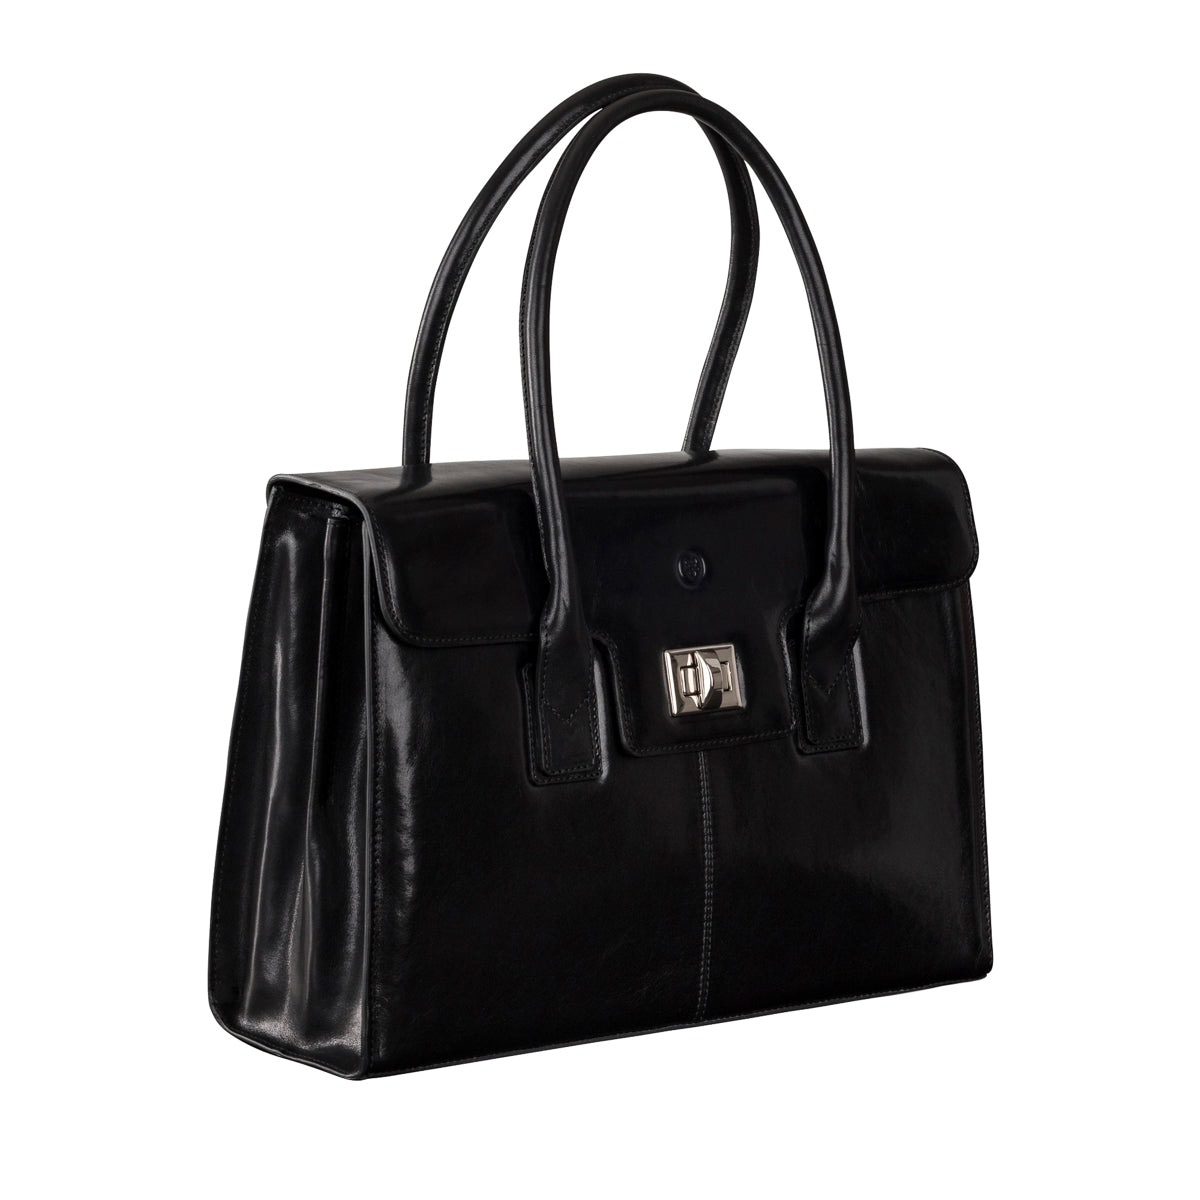 Image 2 of the 'Fabia' Black Veg-Tanned Leather Workbag